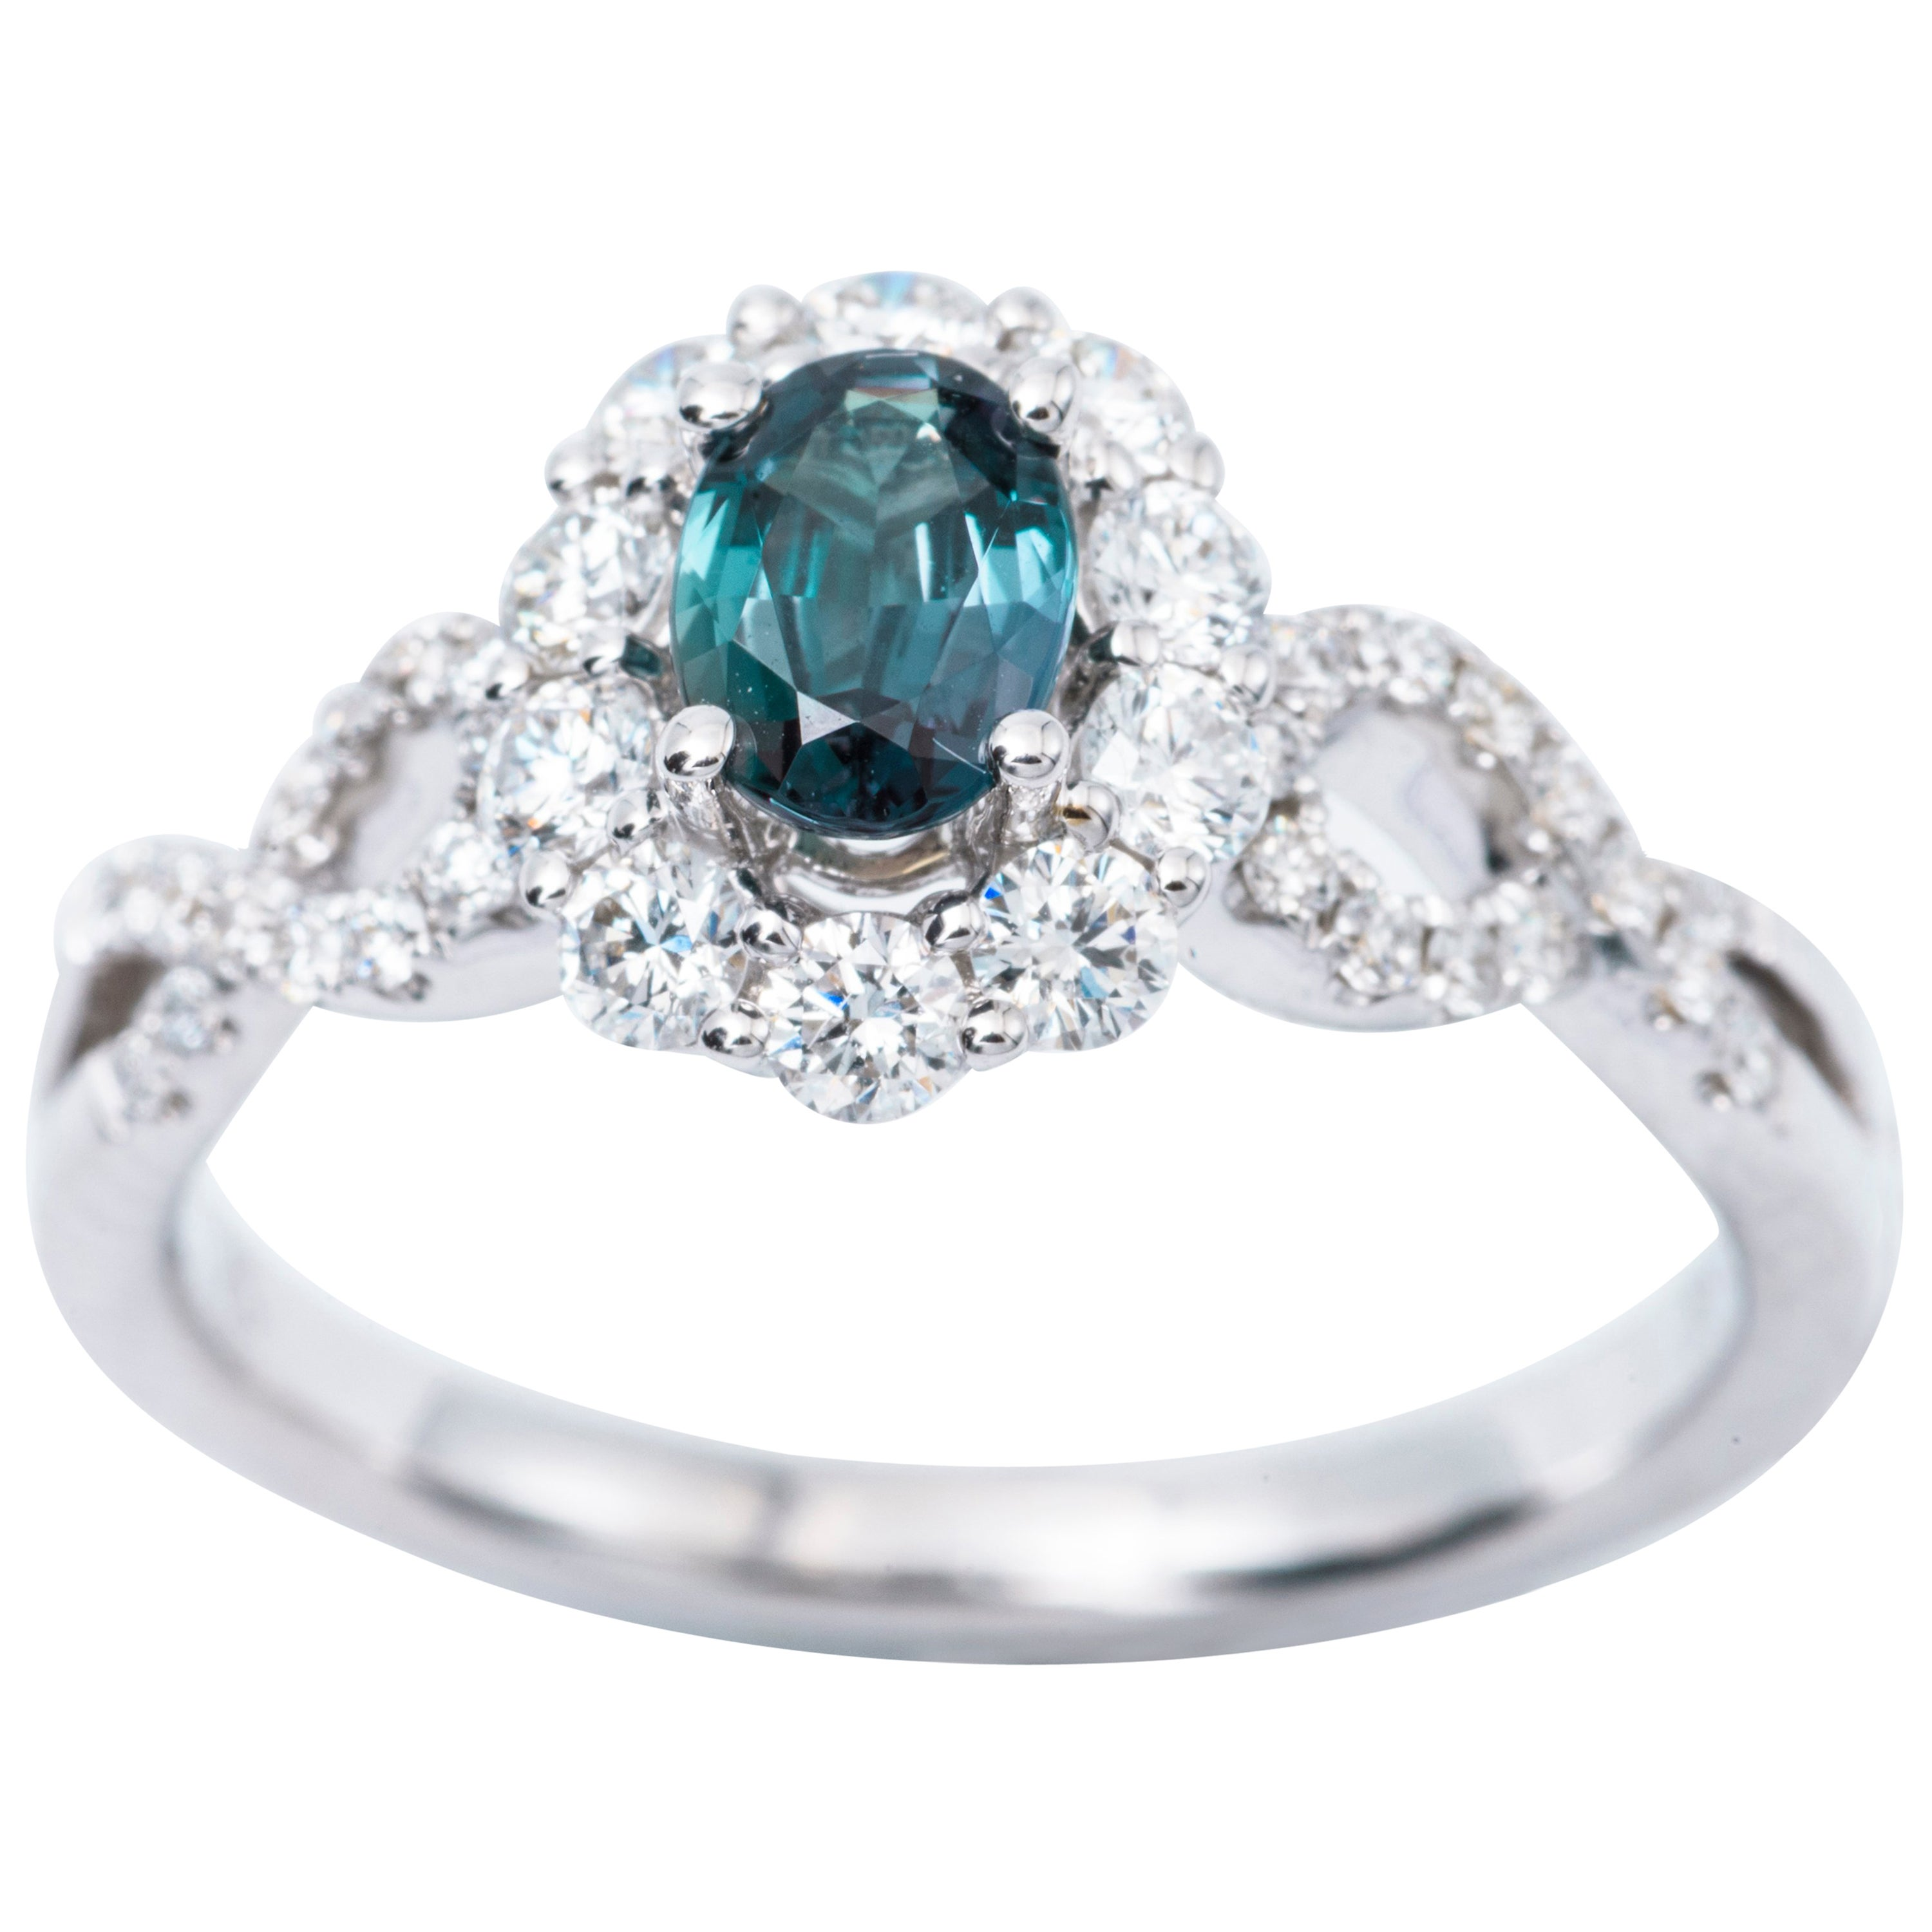 b368b610d29b4 Oval Alexandrite Diamond Color Changing Halo Engagement Ring with  Certificate For Sale at 1stdibs